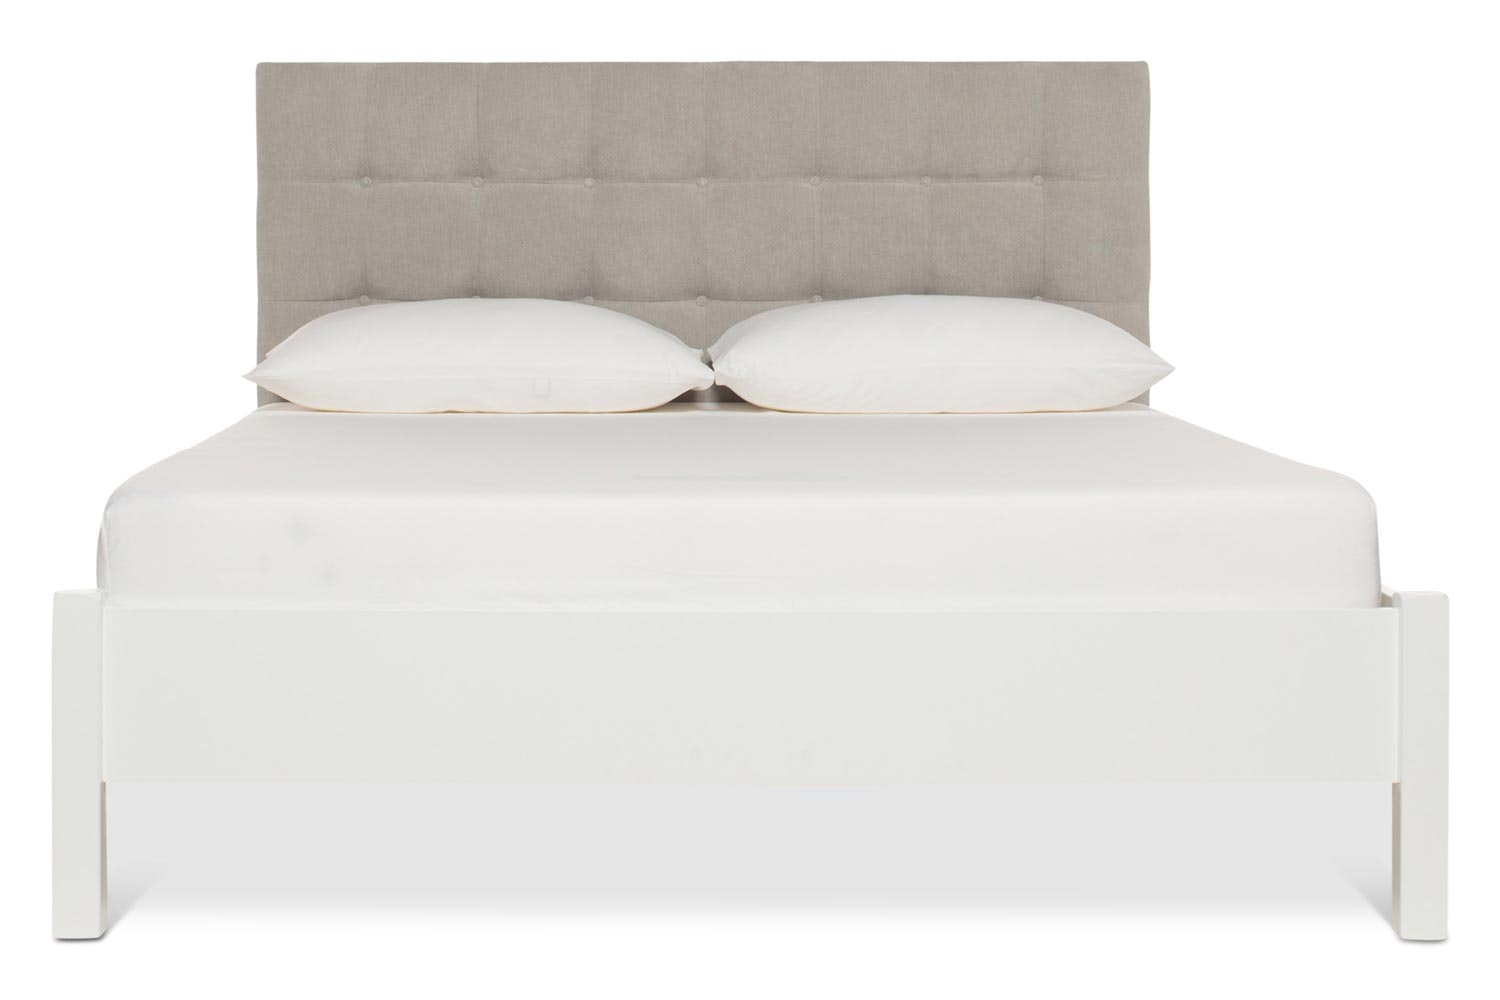 Emily Loft White Bed Frame | 5FT | Portman Headboard Silver